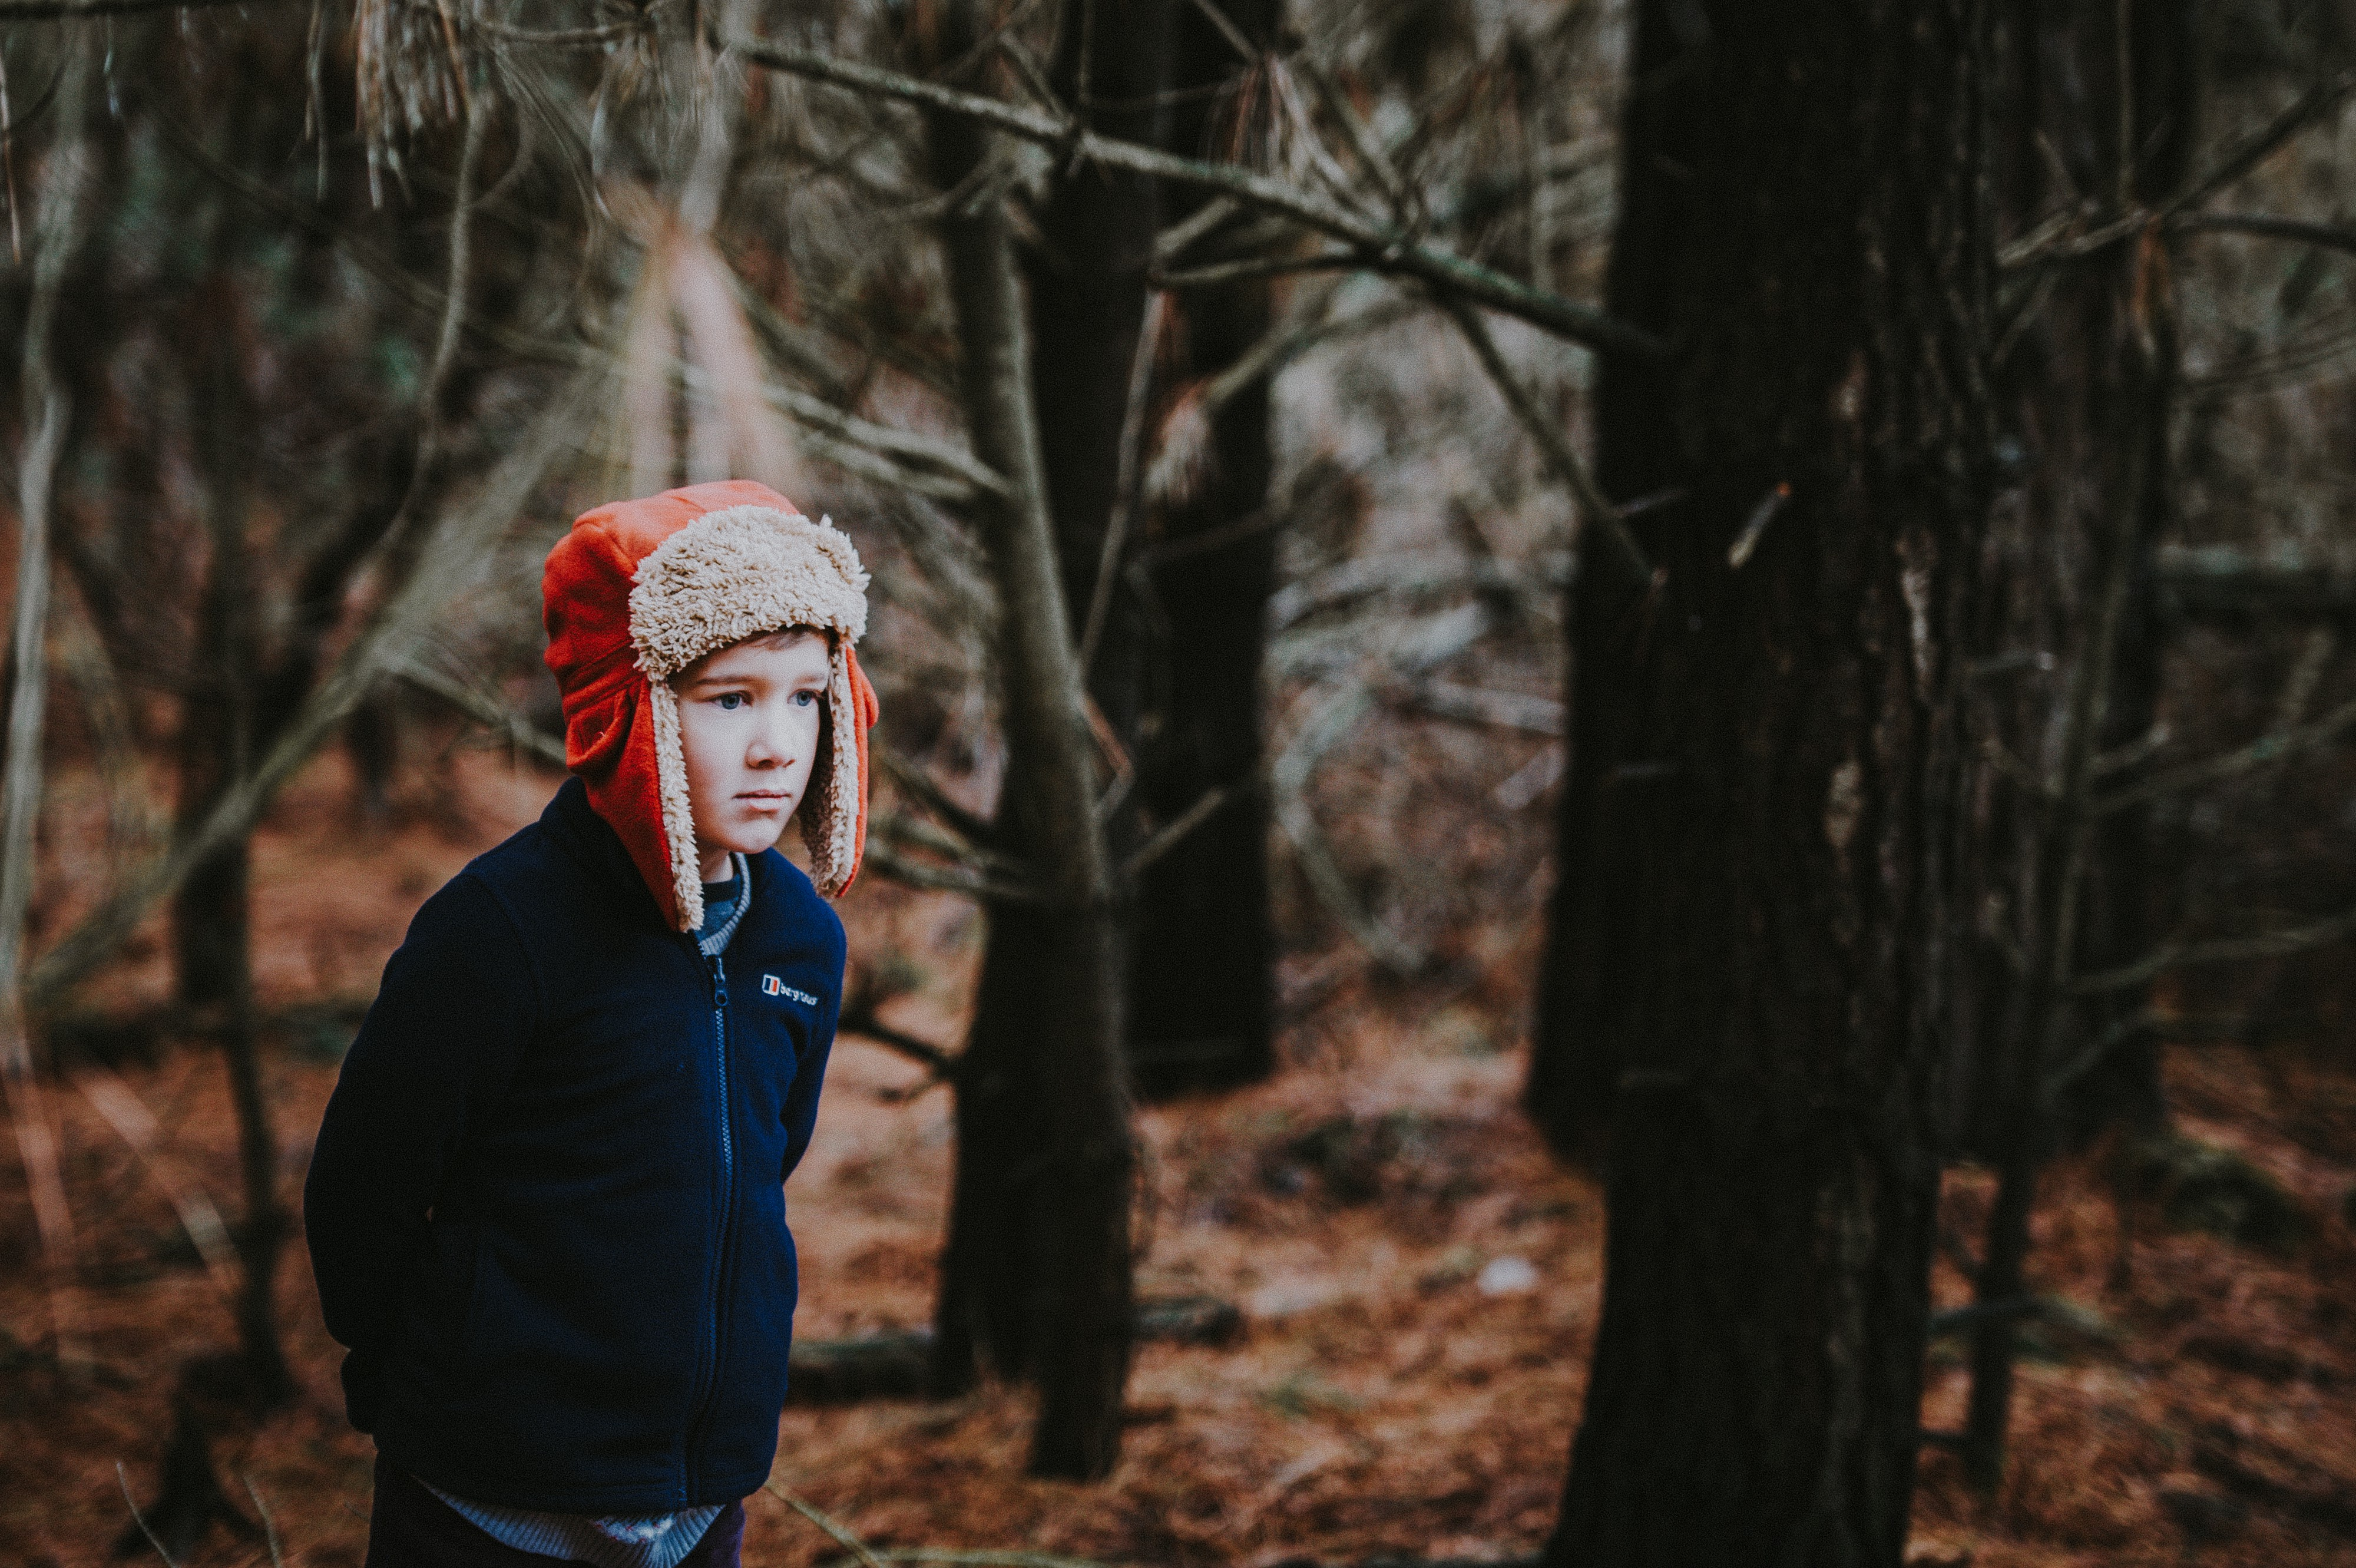 A boy alone in the forest